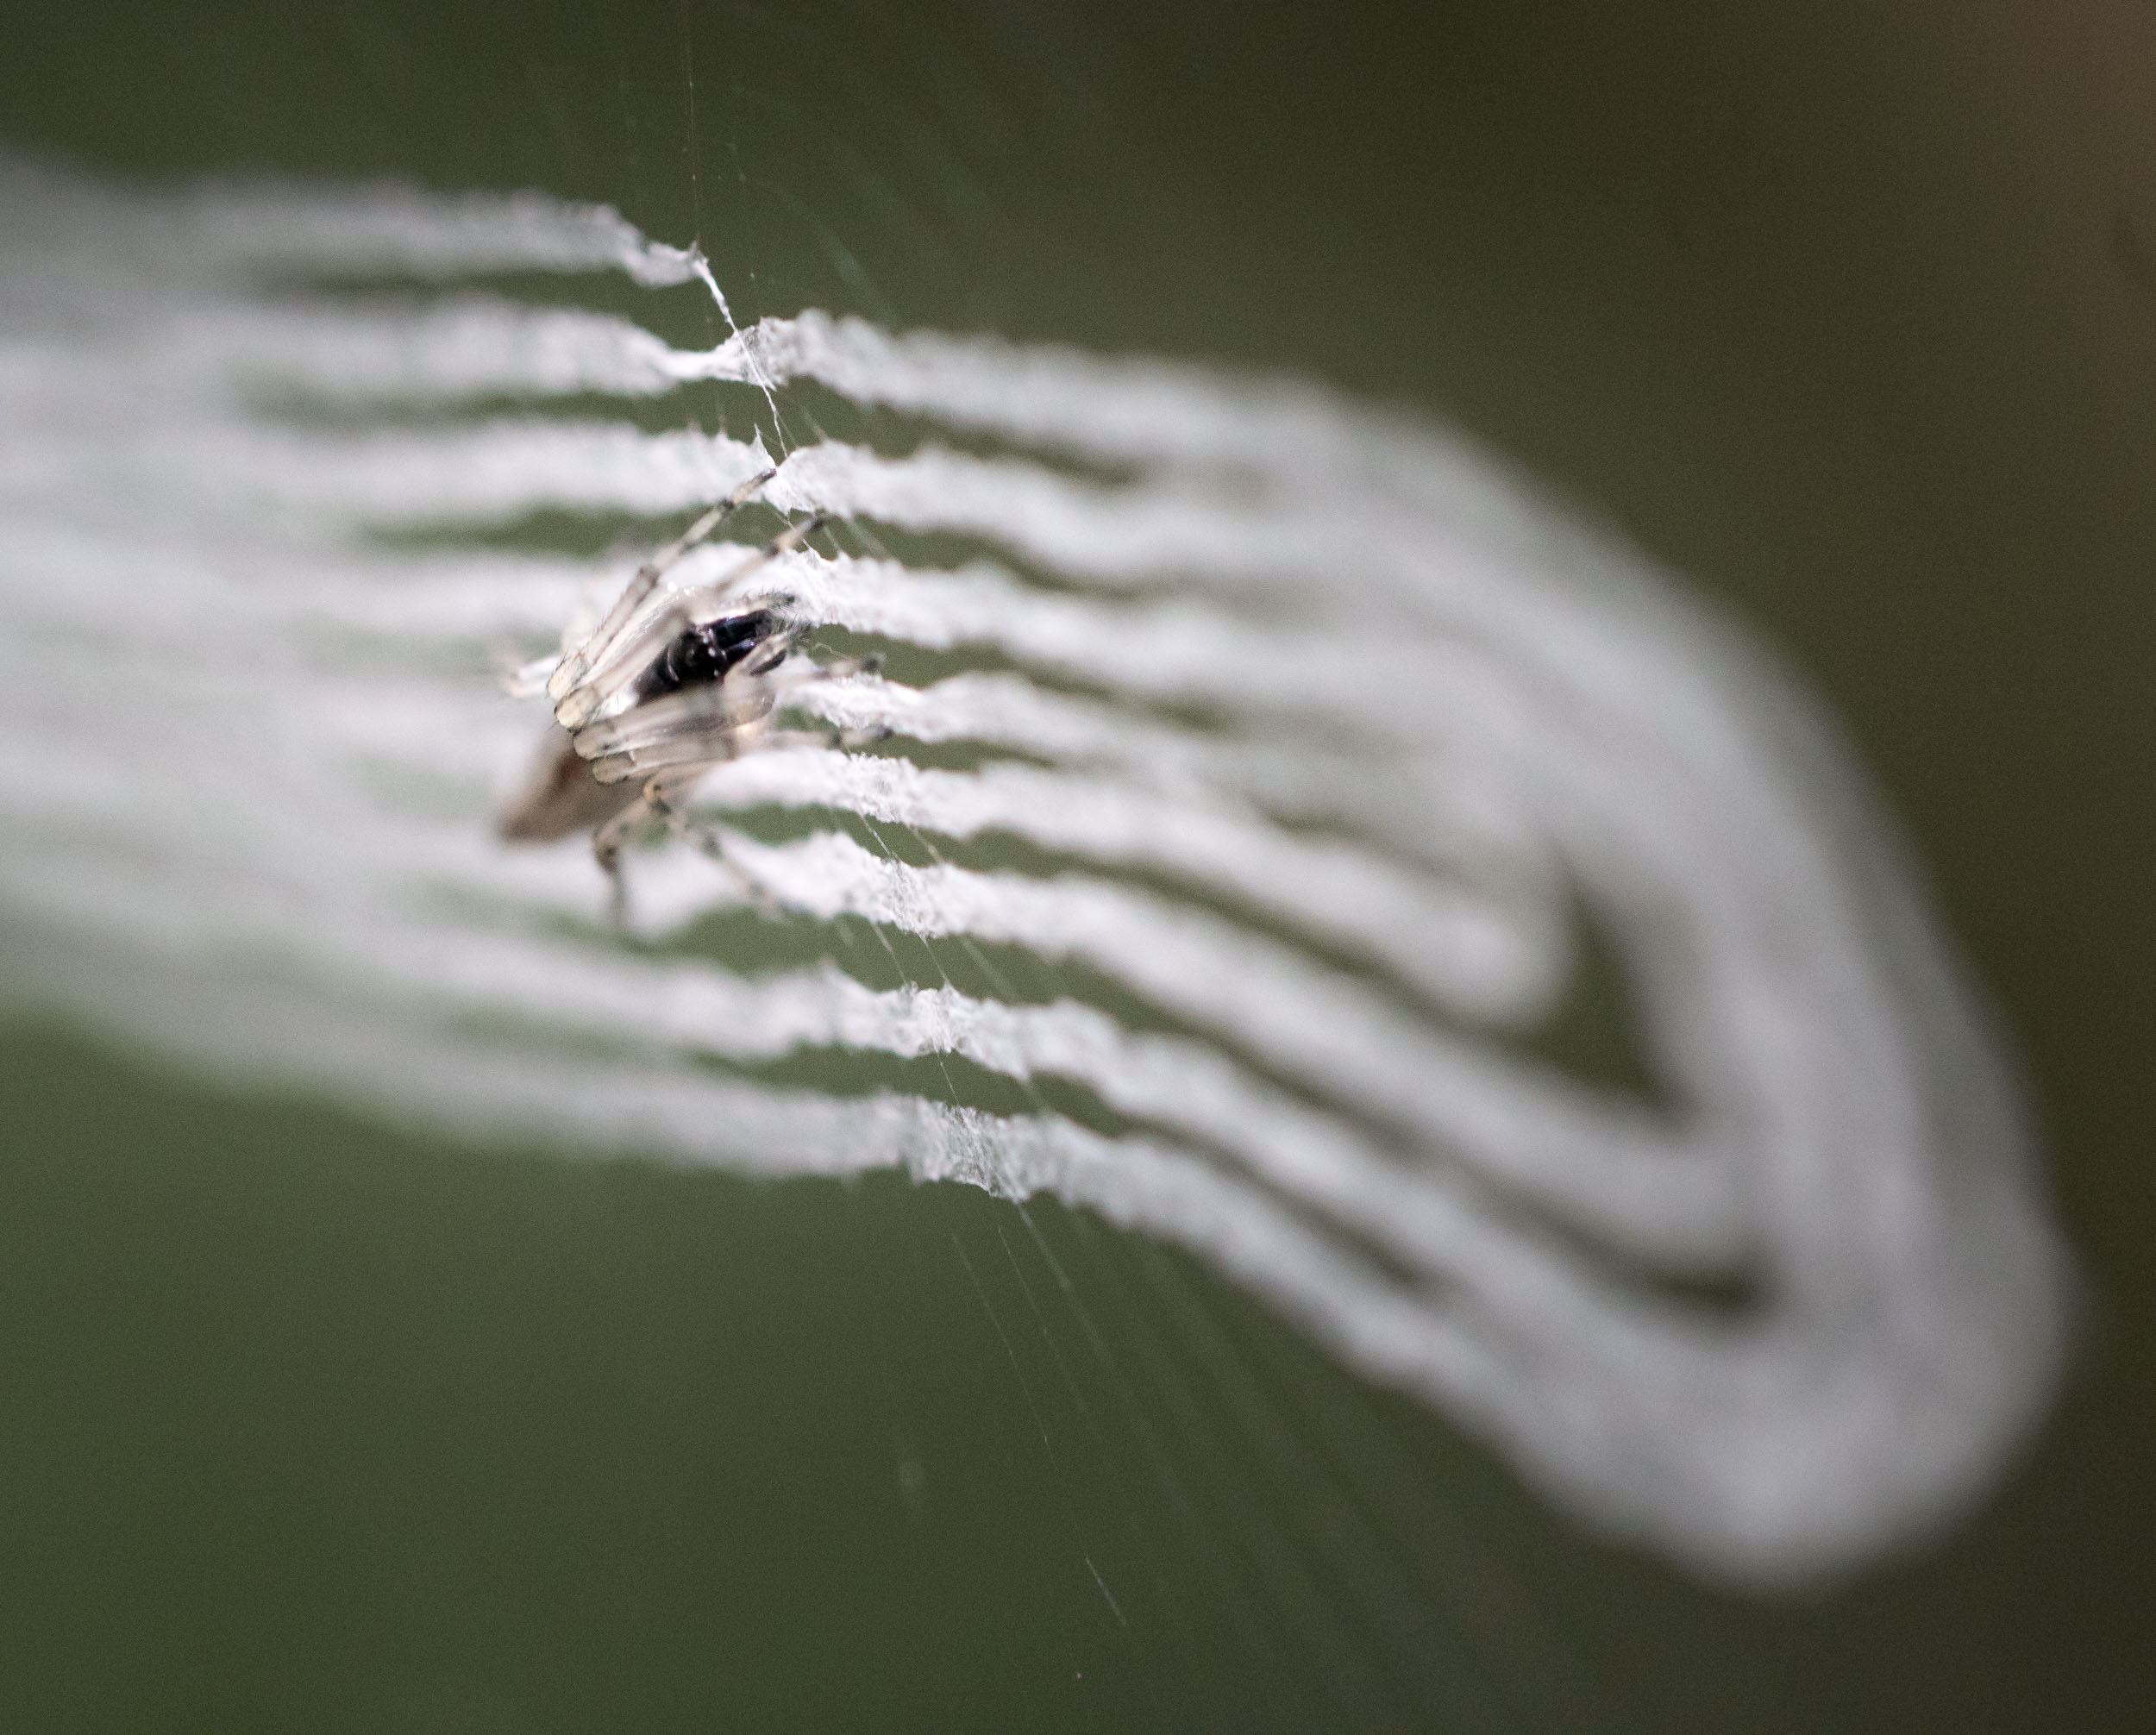 This tiny spider and his funky web were on the railings as I walked up the watch tower.....